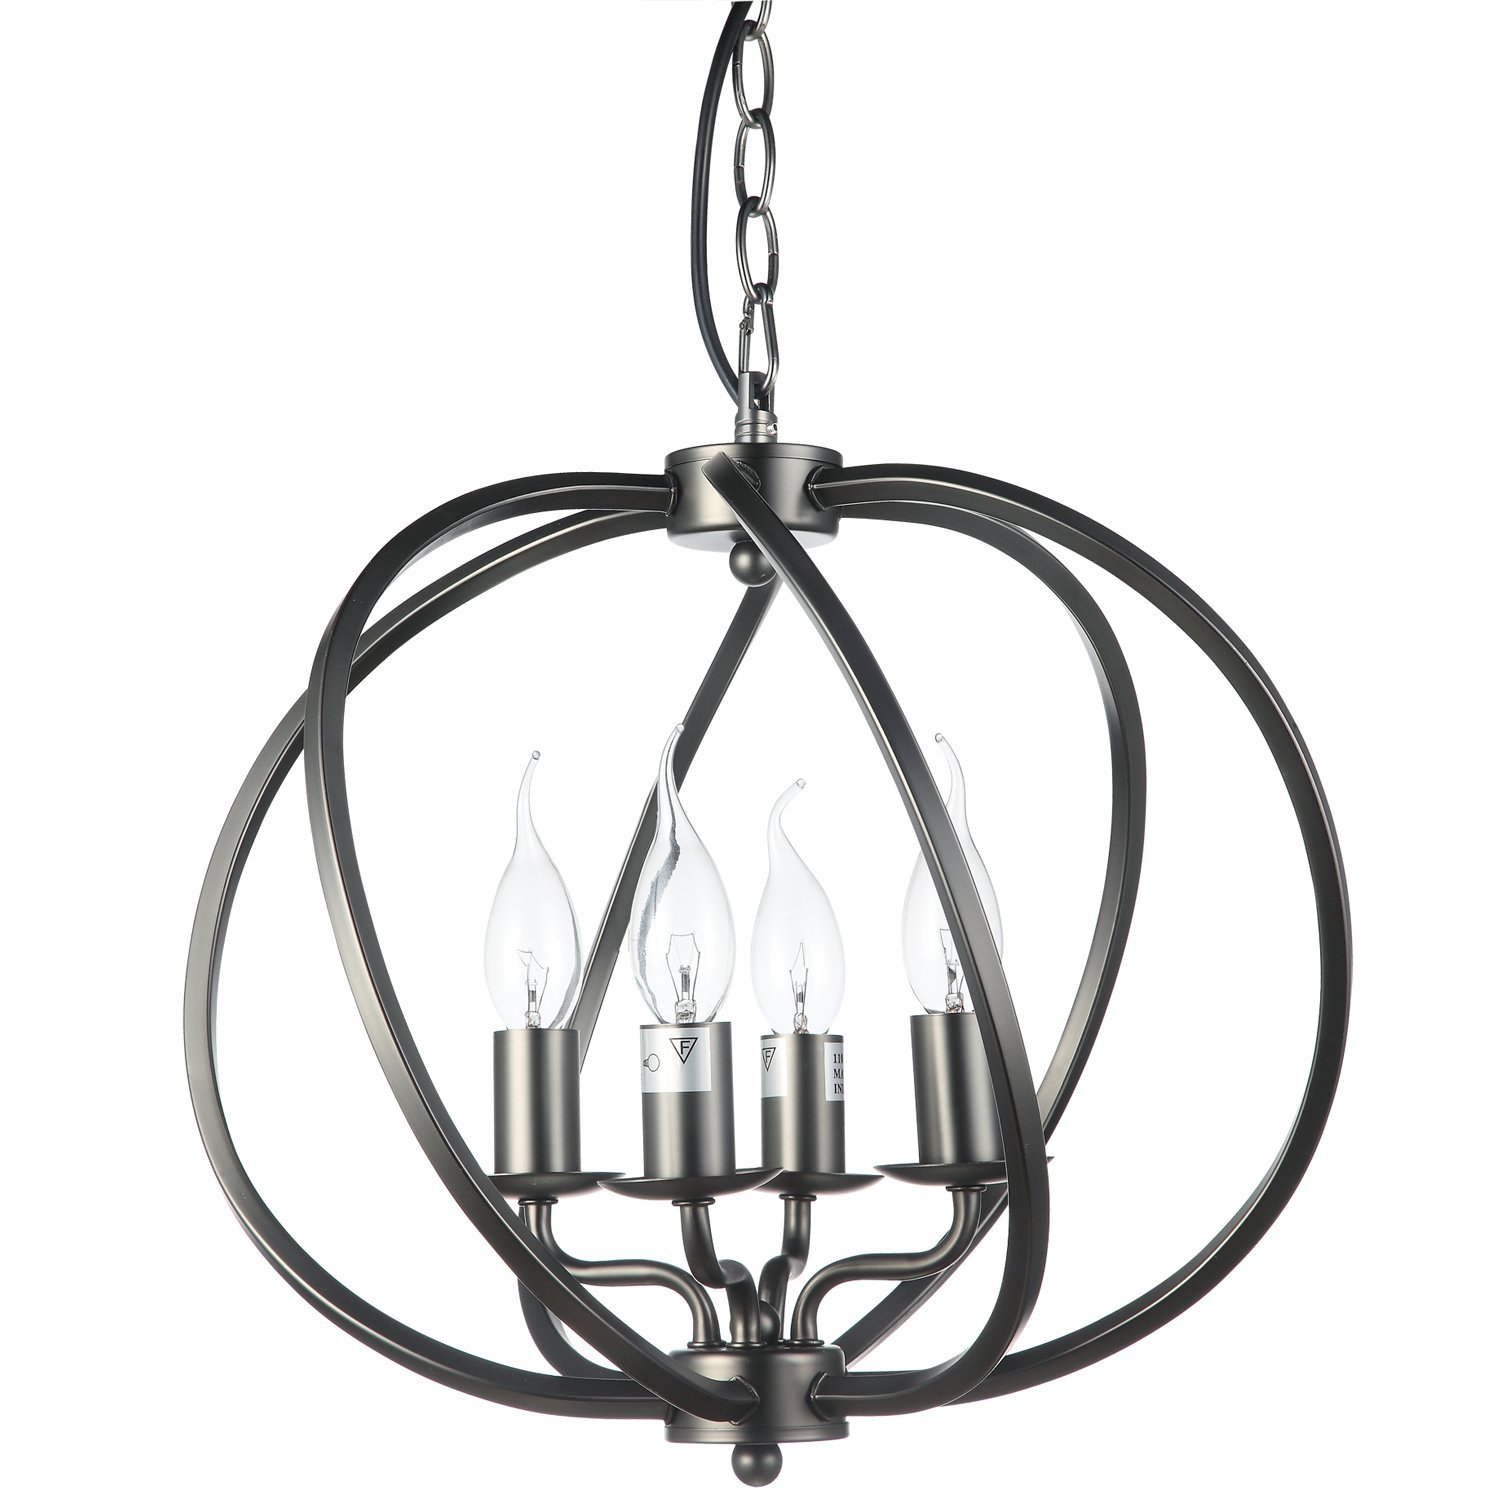 "VONN VTC31104BZ Transitional 16"" Led Chandelier, Industrial Globe Chandelier Lighting with LED Filament Bulbs, Adjustable Hanging Light, Sargas Collection, 15.74"" x 14.17"" x 45.67"", Architectural Bronze"